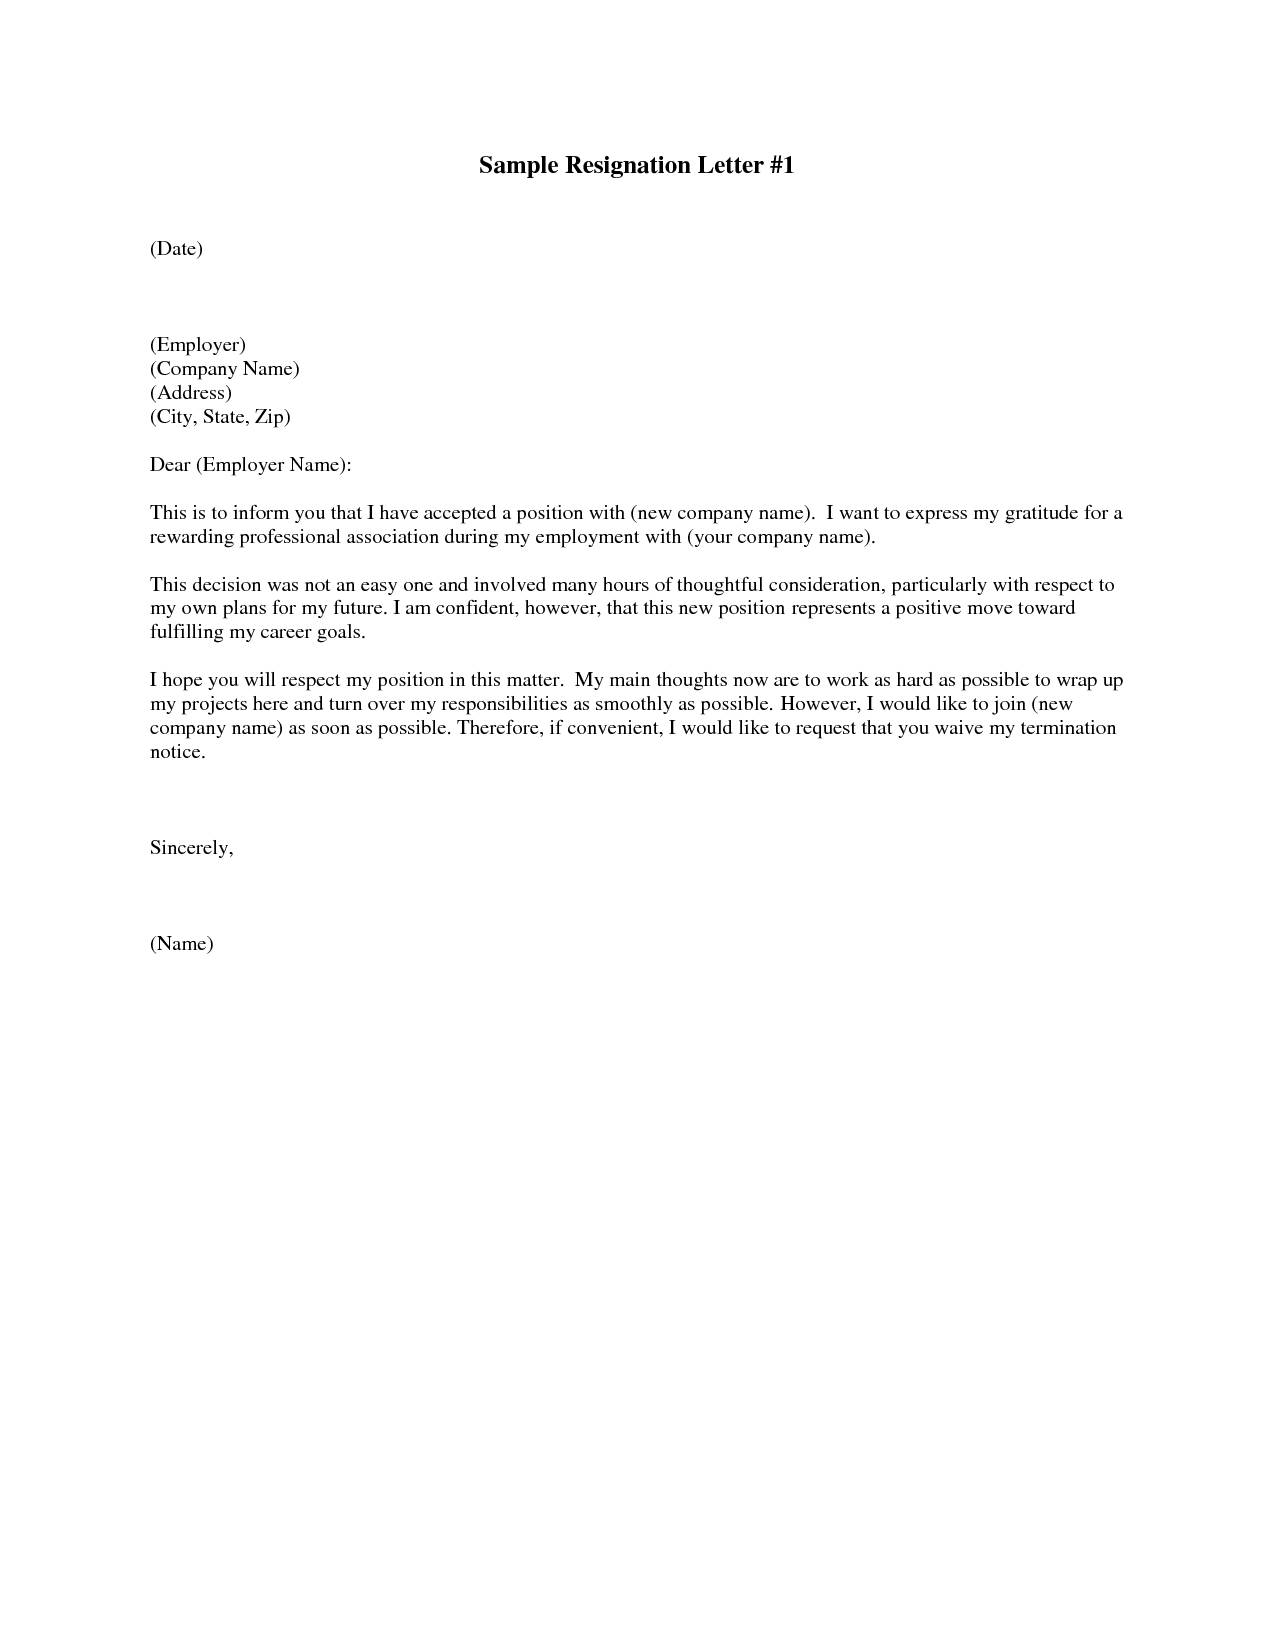 best resignation letter samples top resignation letter professional resignation letter 7589